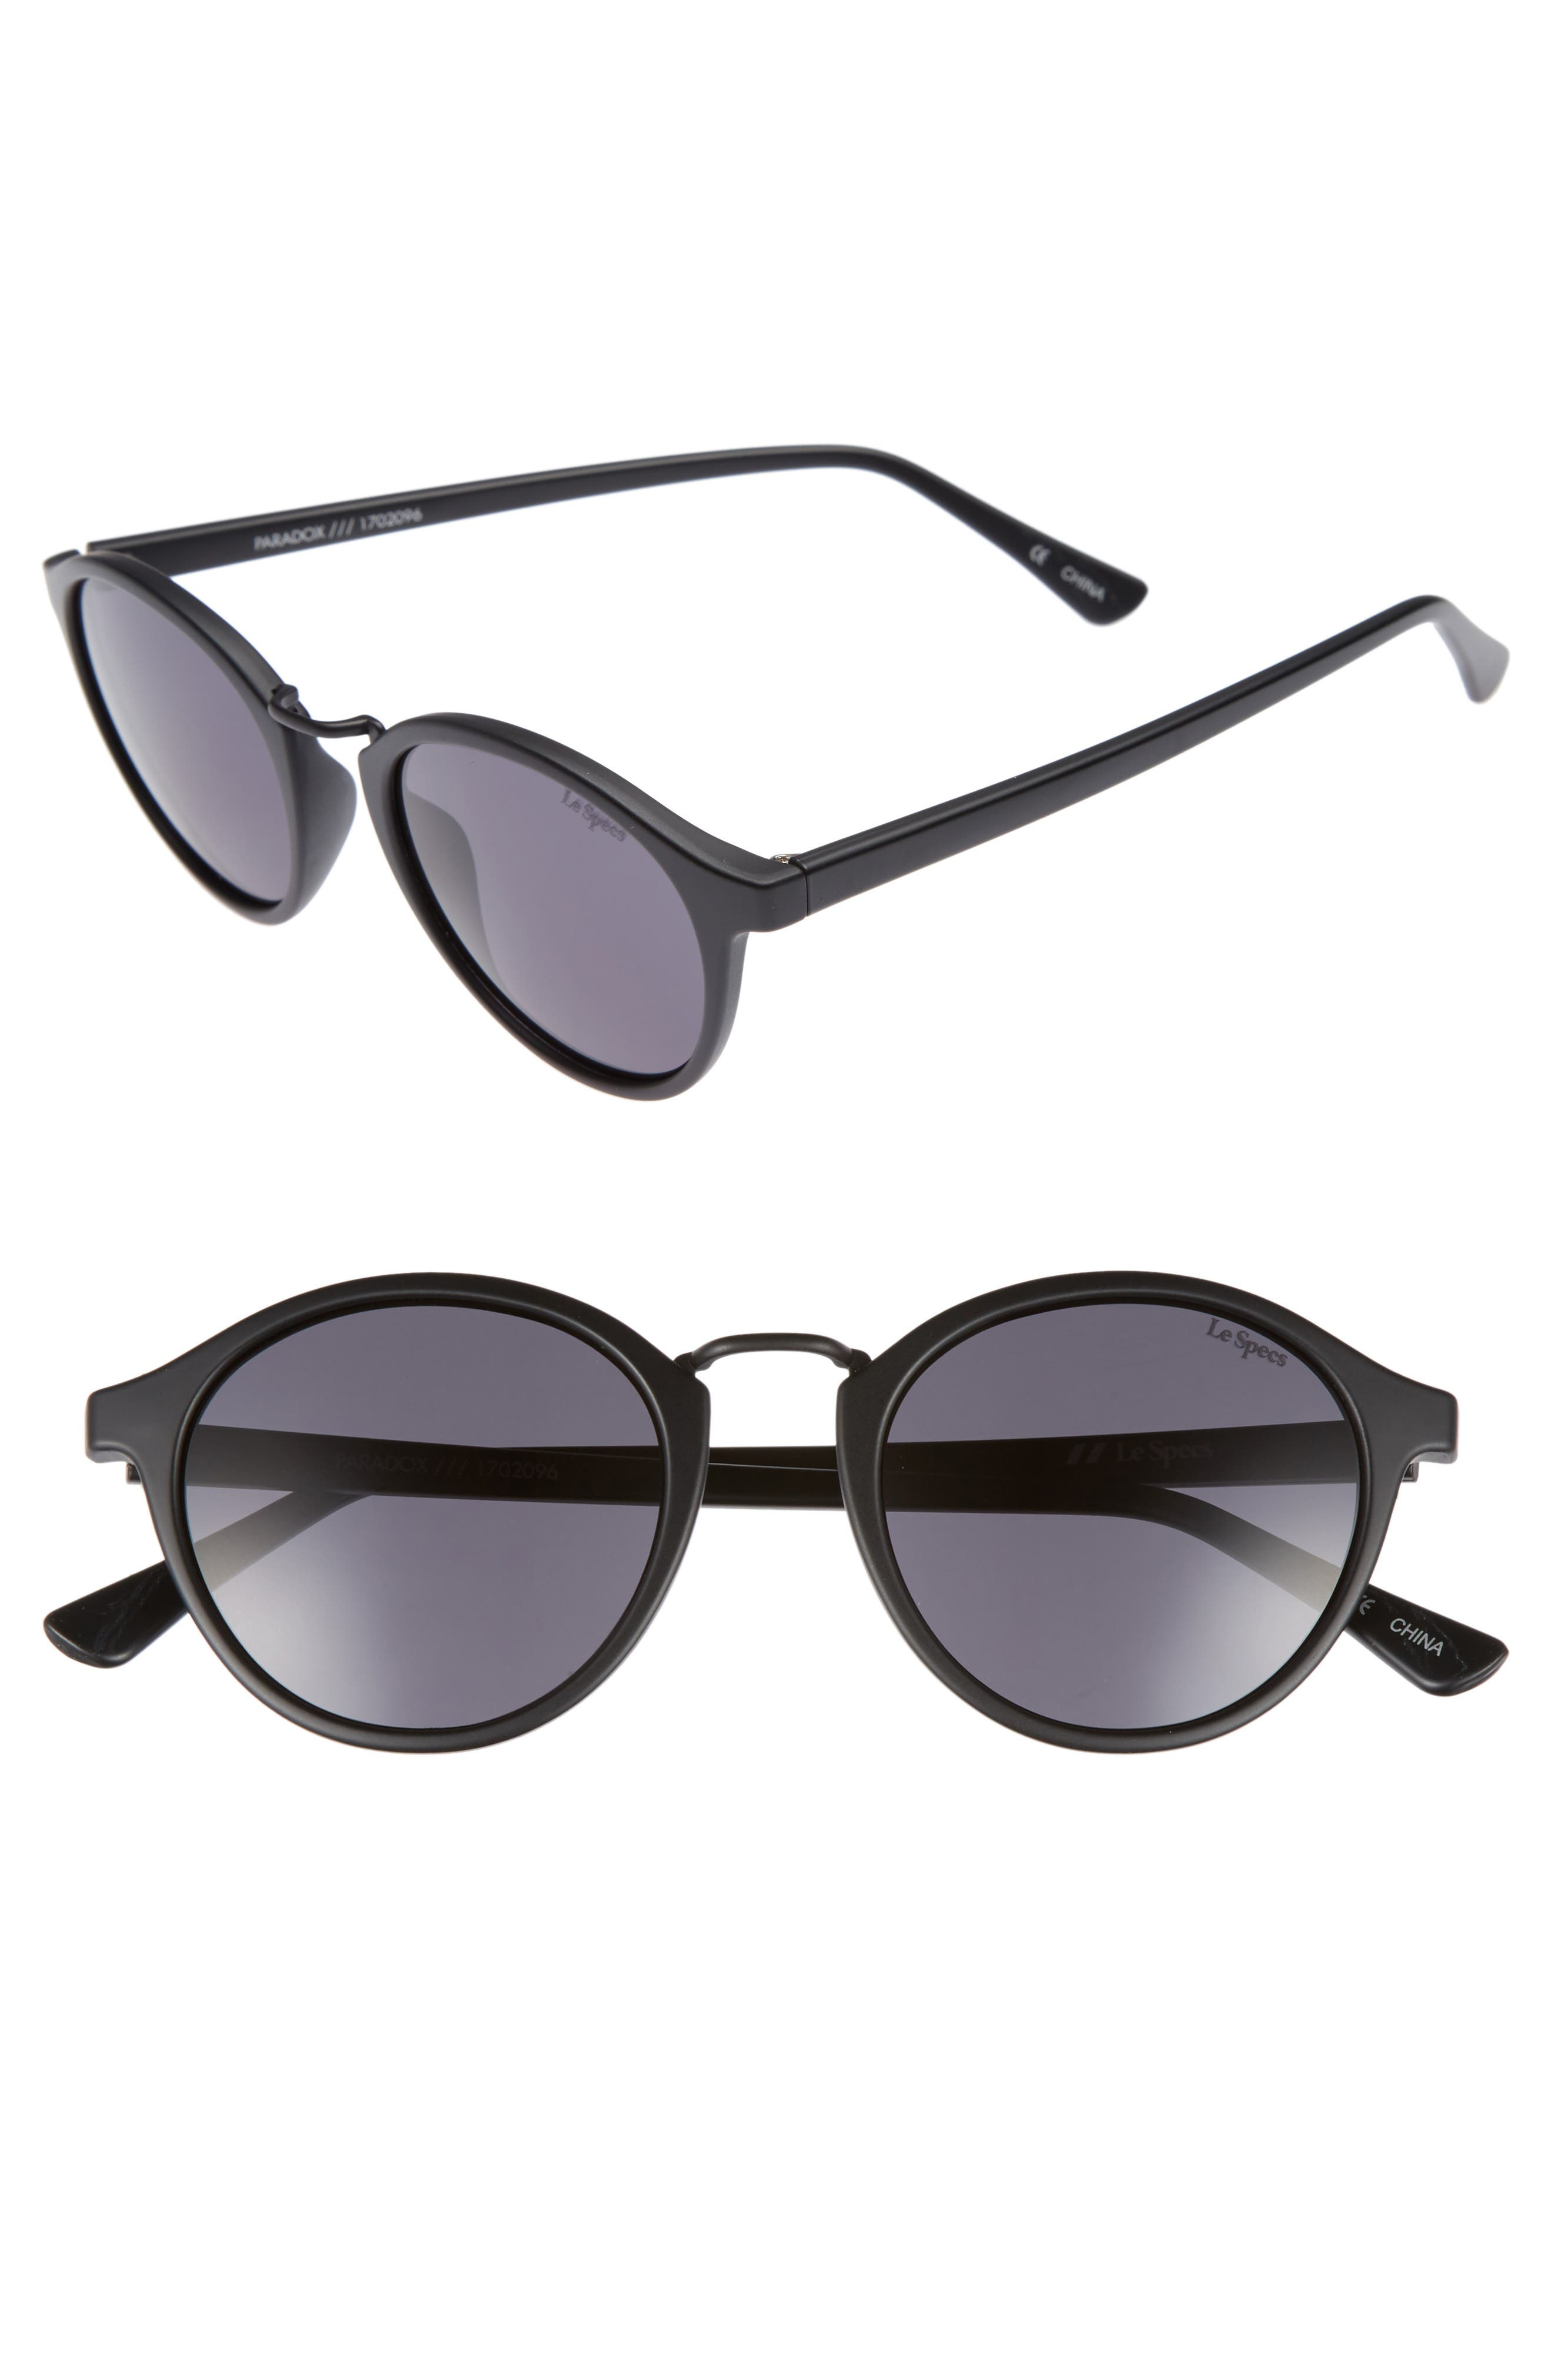 Main Image - Le Specs Paradox 49mm Oval Sunglasses